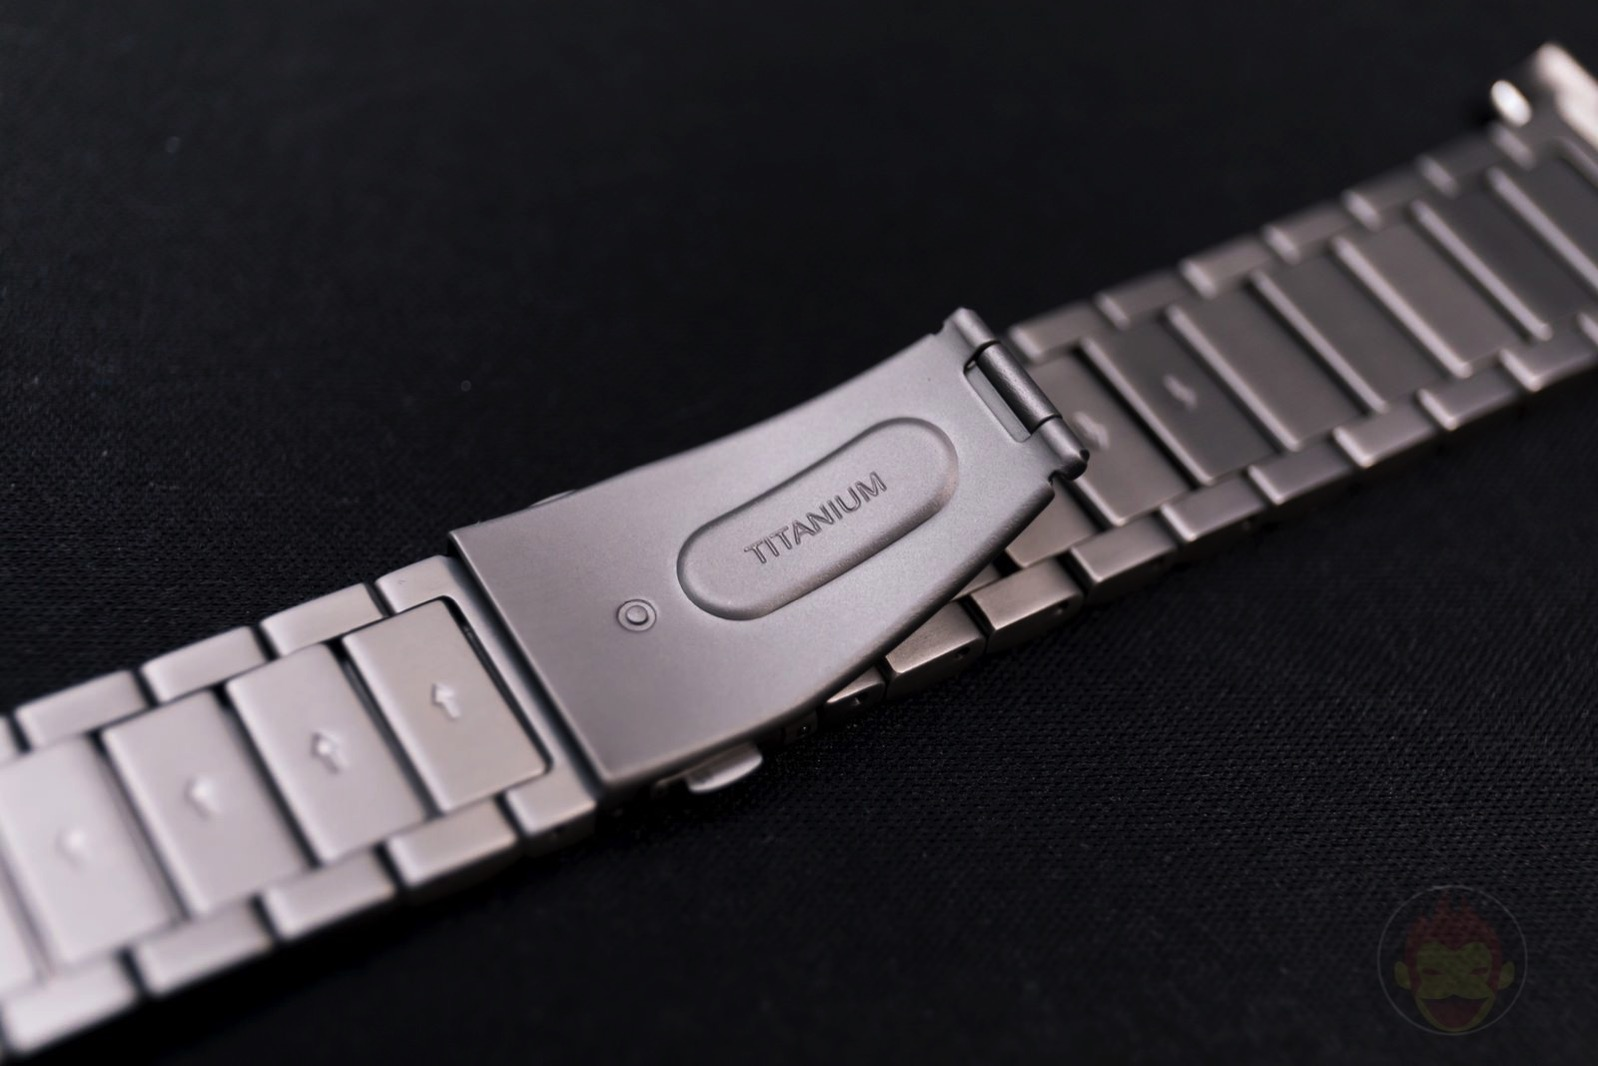 Apple-Watch-Nomad-Titanium-Band-Review-05.jpg